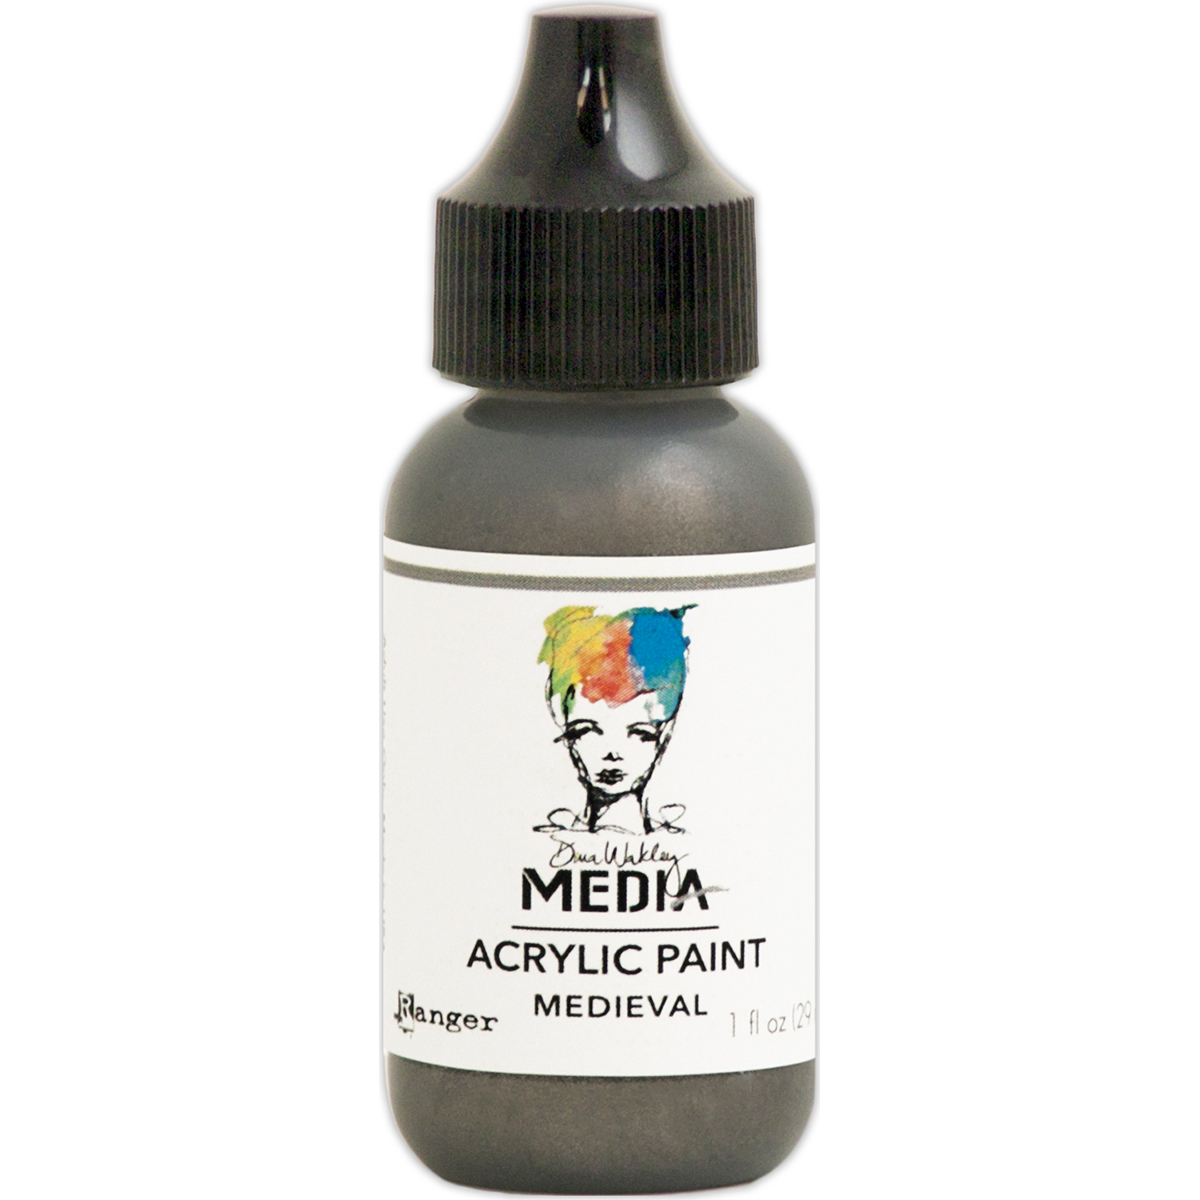 Dina Wakley Media Metallic Acrylic Paint 1oz-Medieval